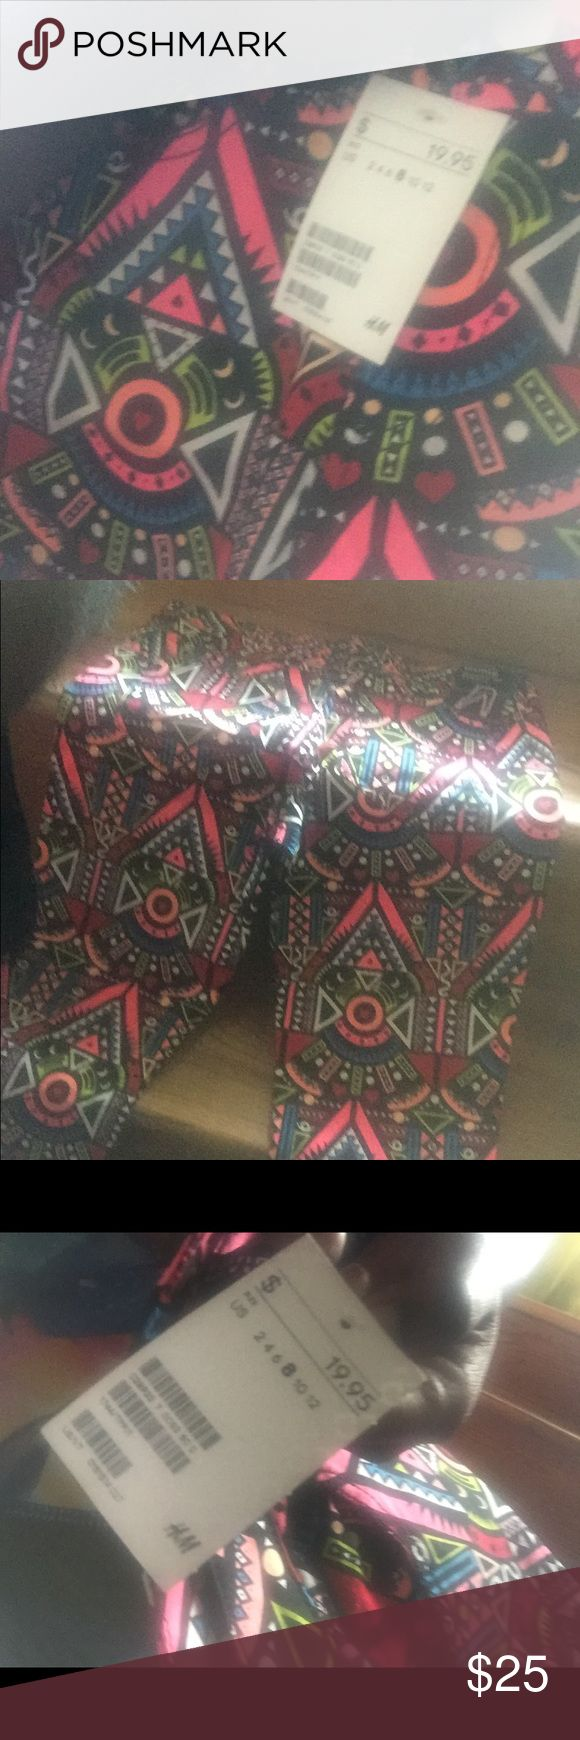 DIVIDED by H&M Super Slim Leg Aztec Print Pants Never Worn tags are still attached size EUR 38=US 8 H&M Pants Skinny